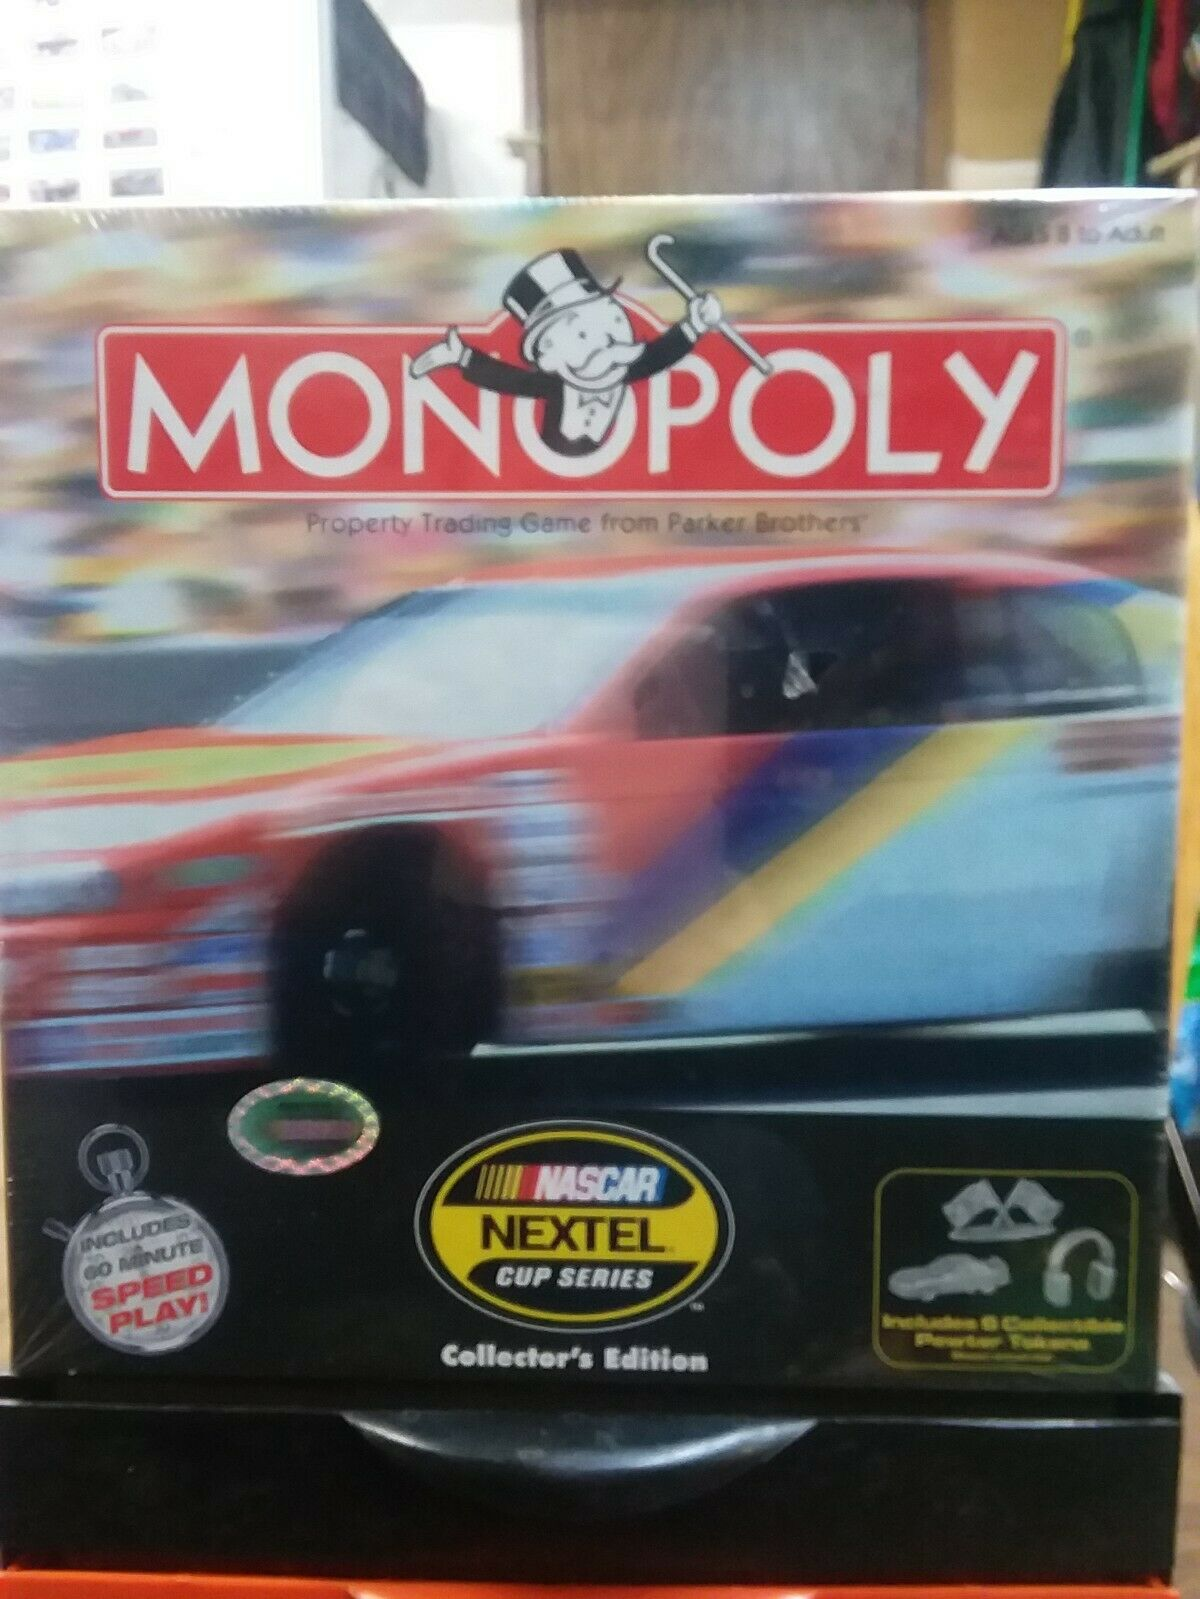 2005 Monopoly NASCAR Nextel Cup Series Collector's Edition Game Sealed